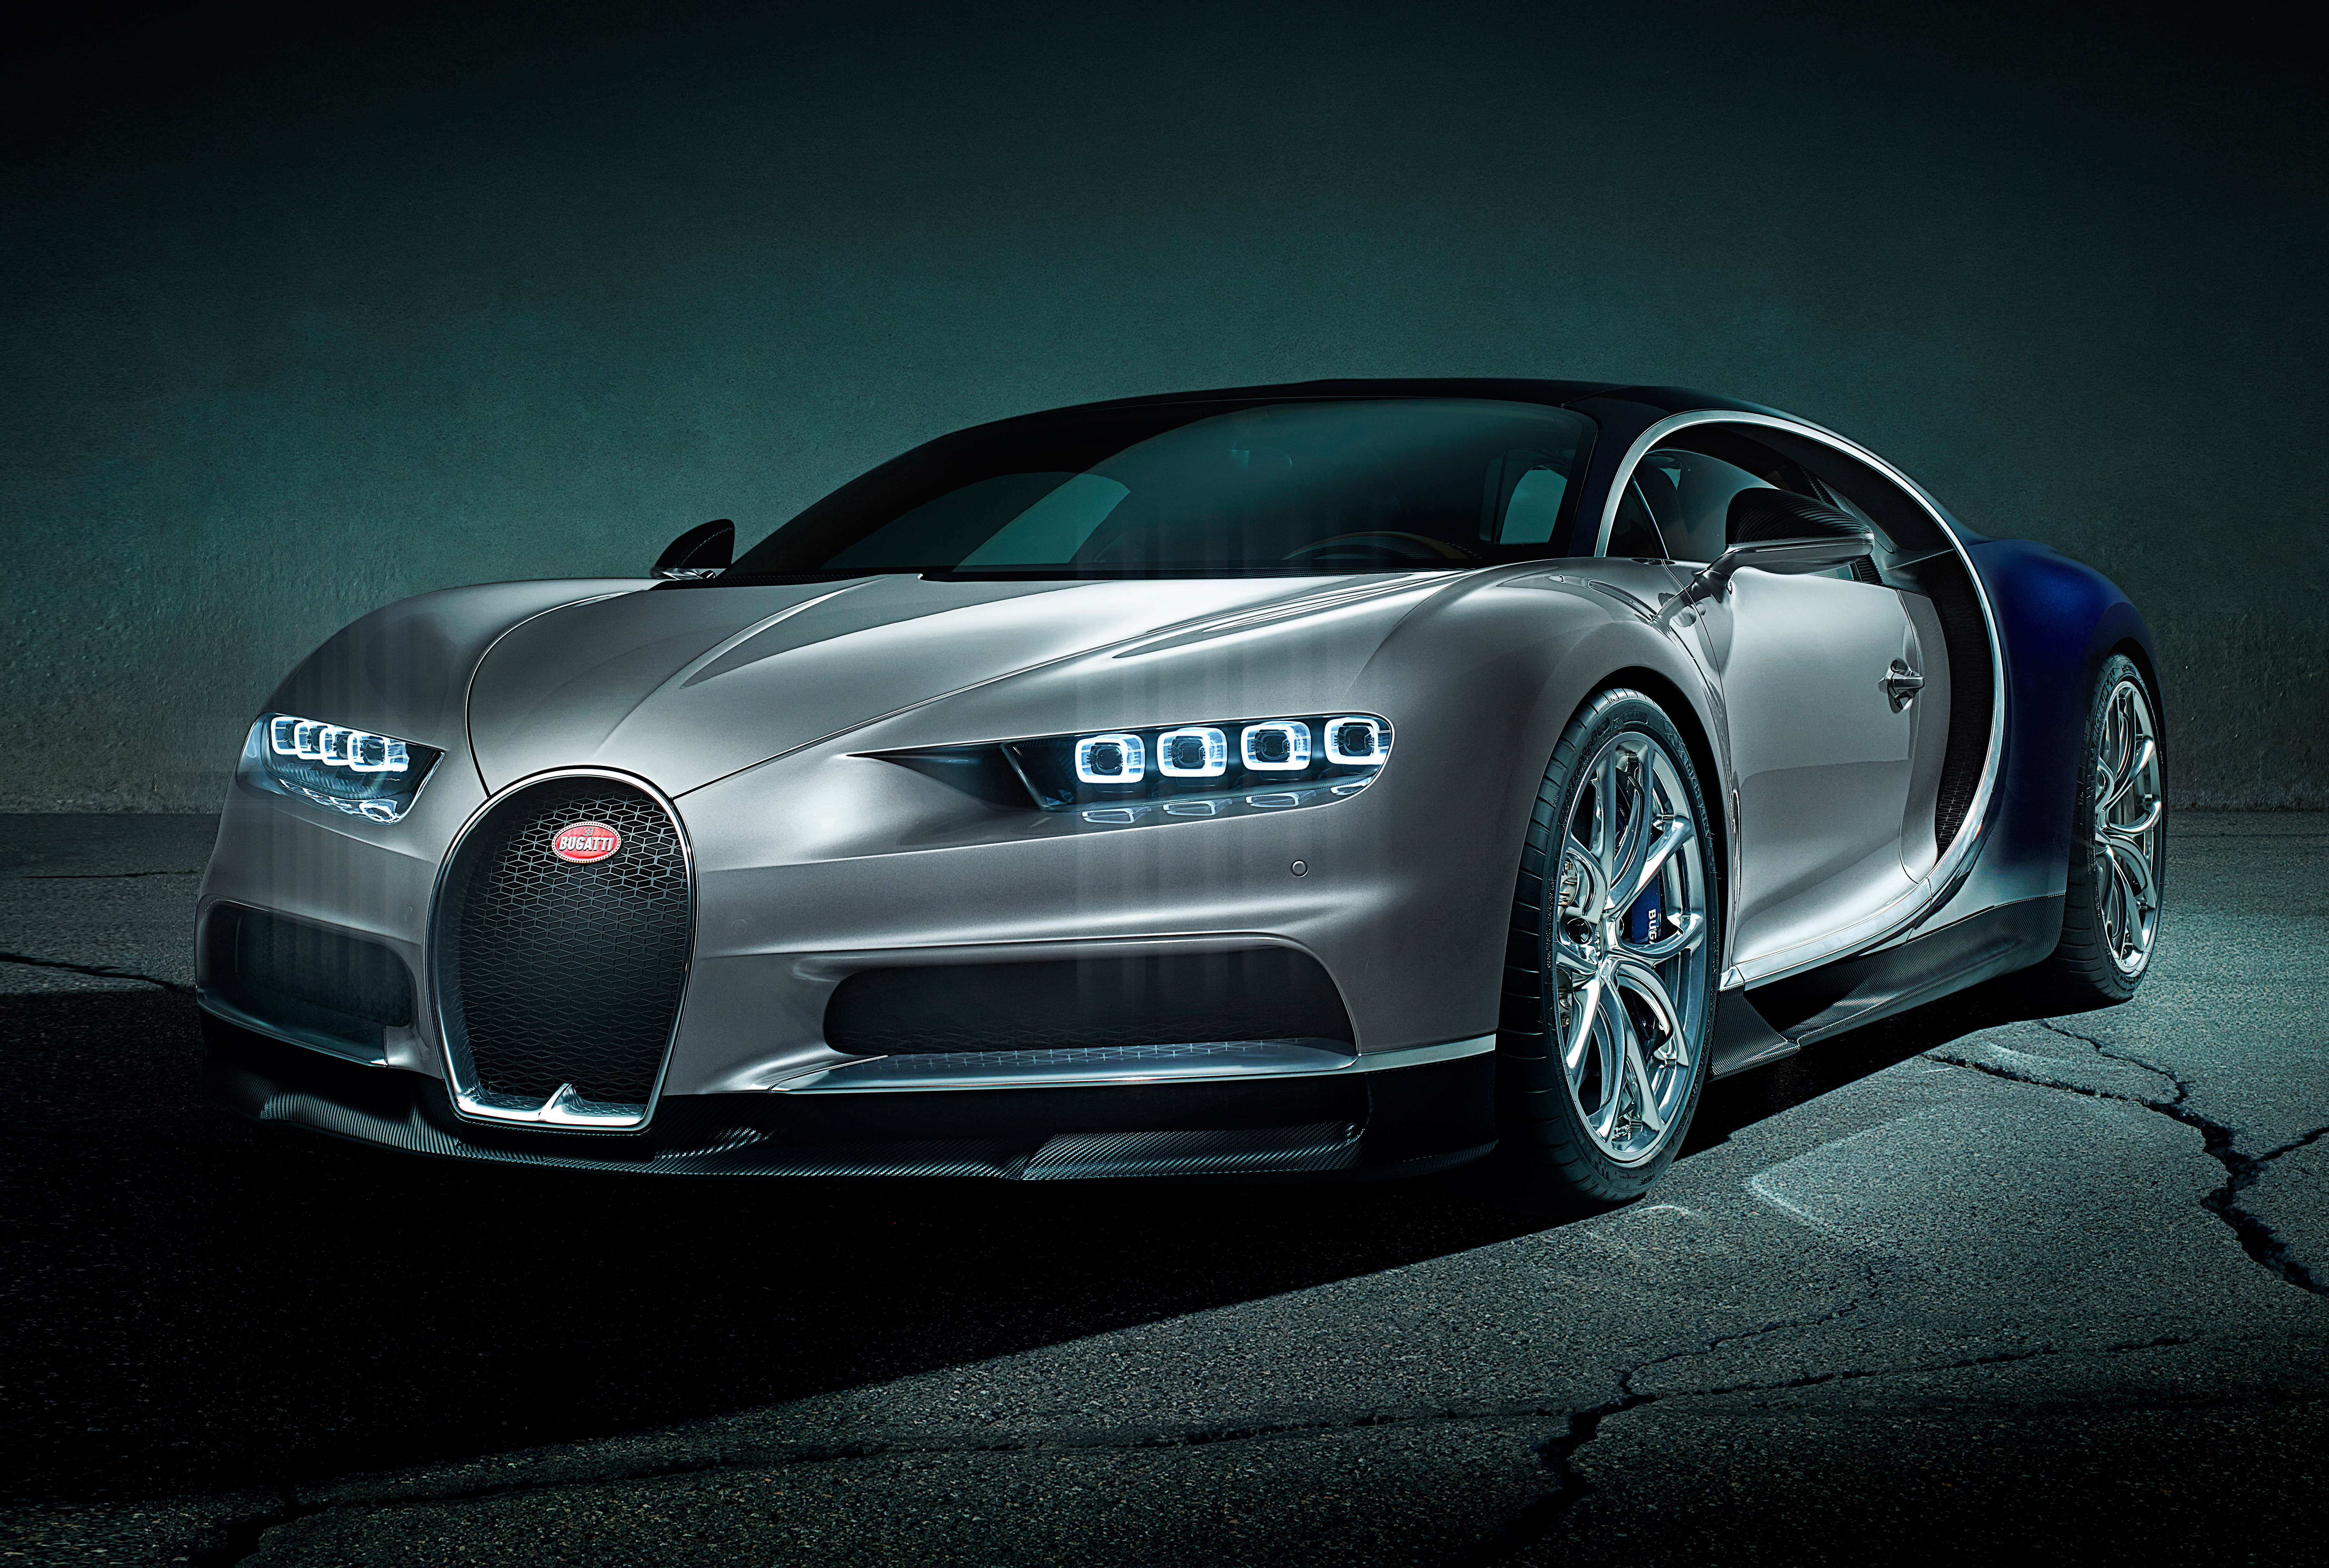 1366x768 Bugatti Chiron 8k 1366x768 Resolution Hd 4k Wallpapers Images Backgrounds Photos And Pictures